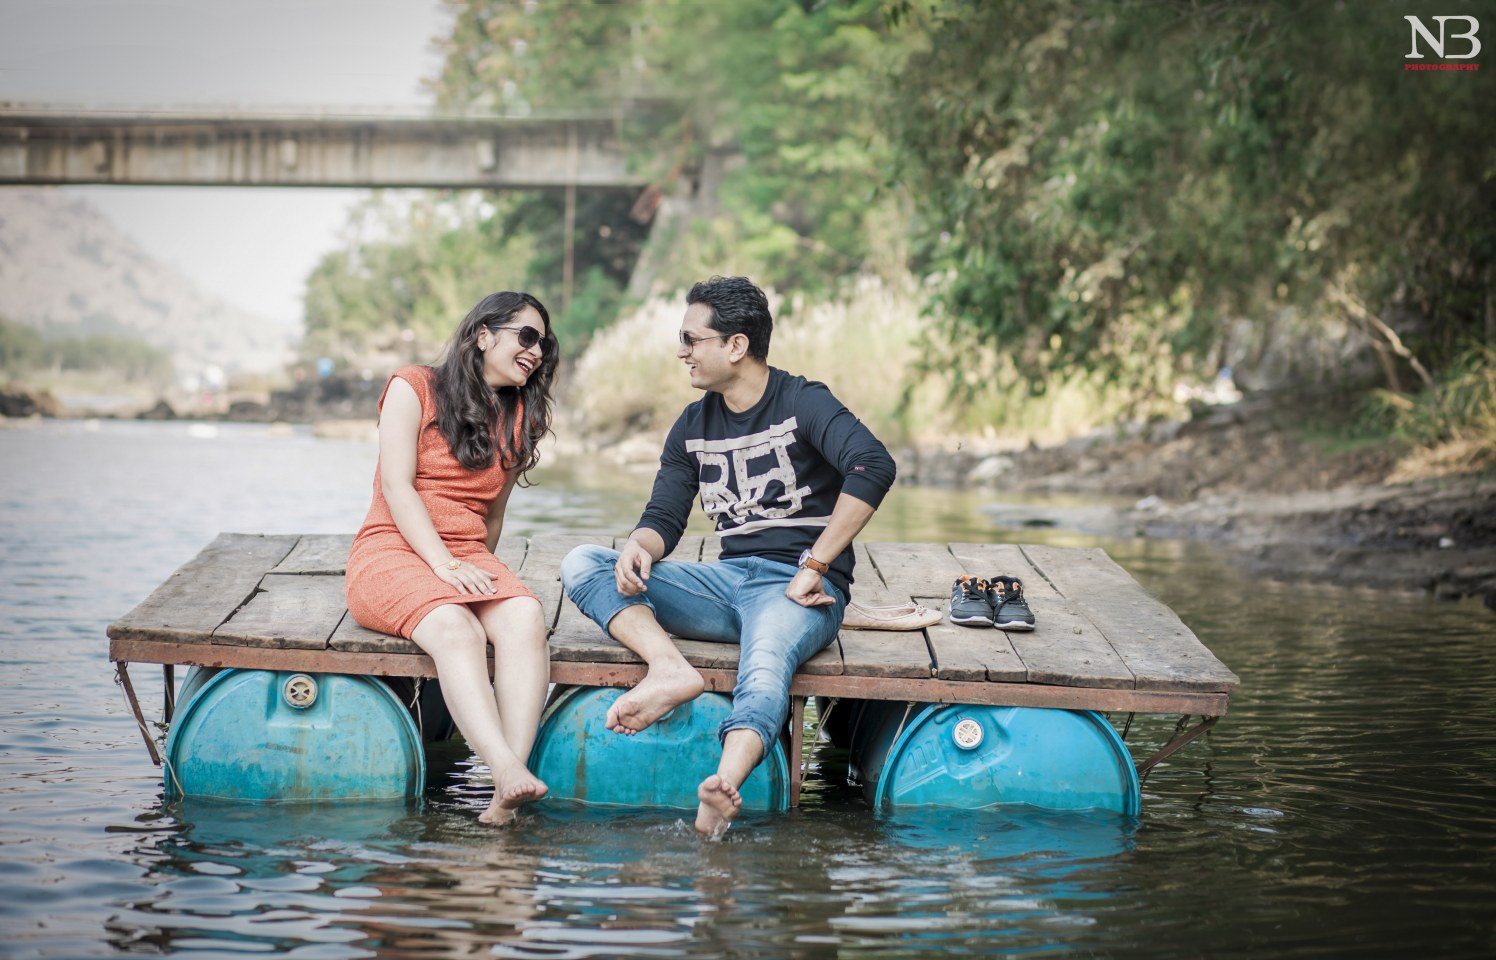 Pre-Wedding Shot Of A Scintillating Couple On A Floating Wooden Crate by Nikhil Y. Bharane Wedding-photography | Weddings Photos & Ideas